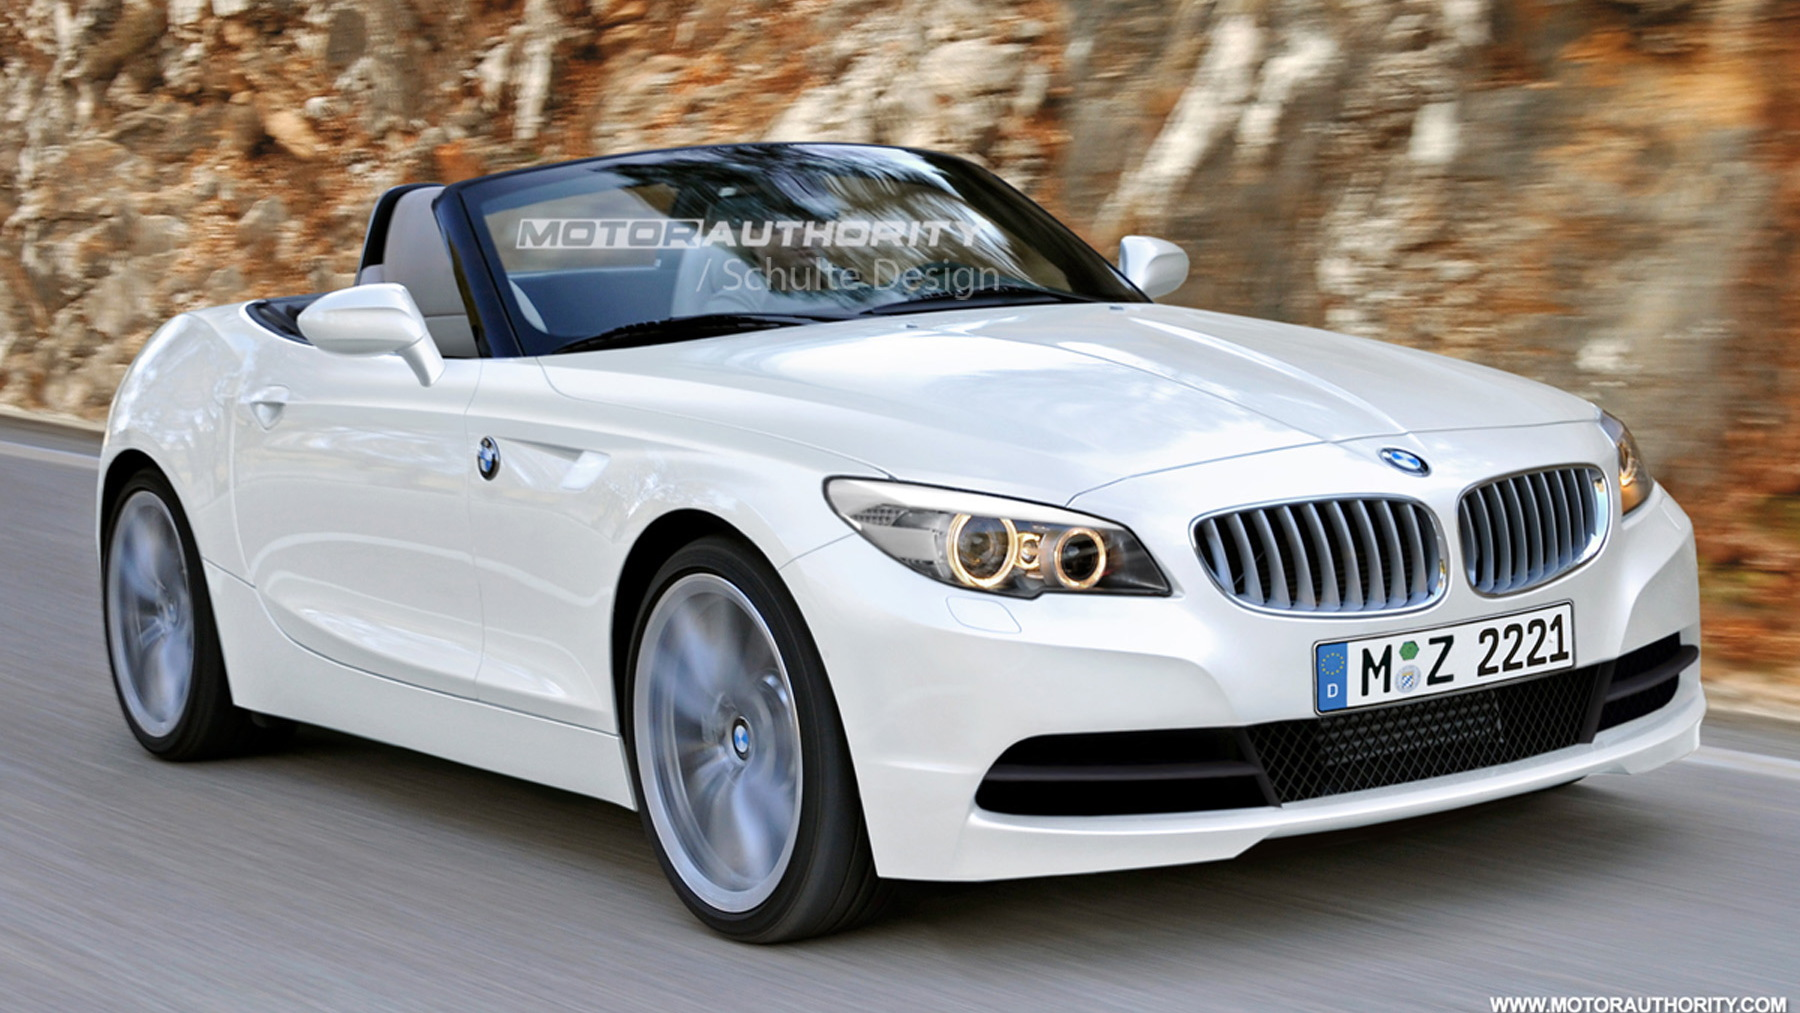 2012 bmw z2 roadster preview rendering 003